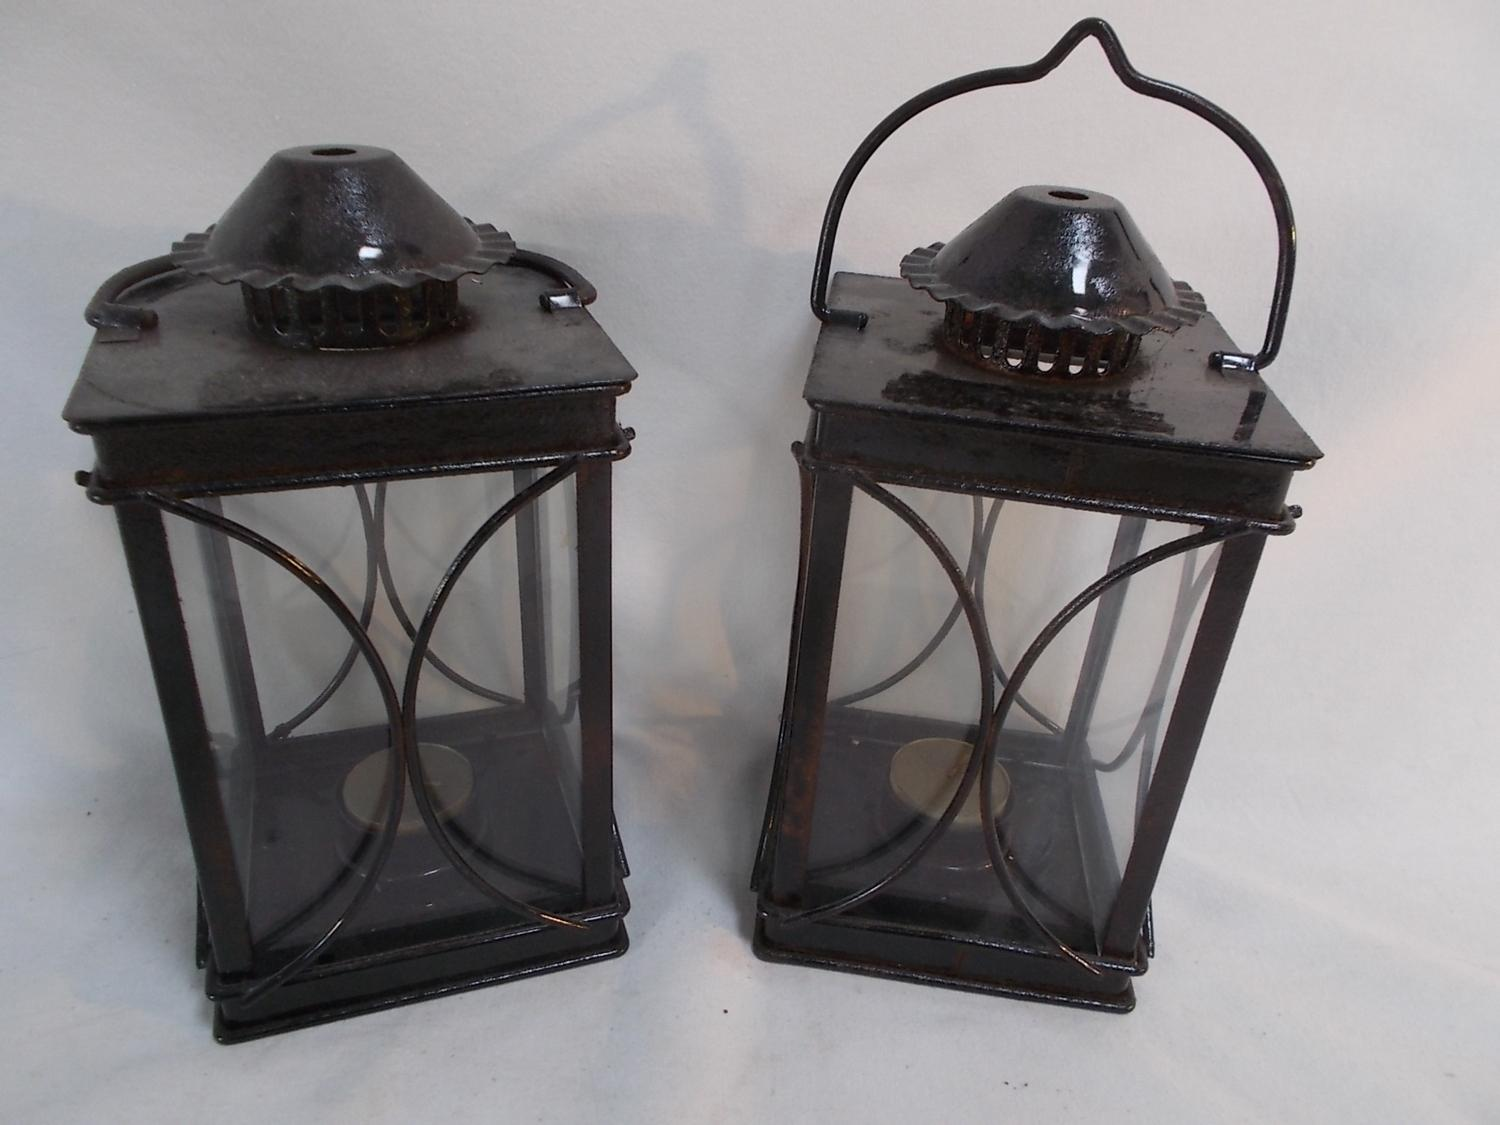 A pair of Black Lantern Candle Holders  image